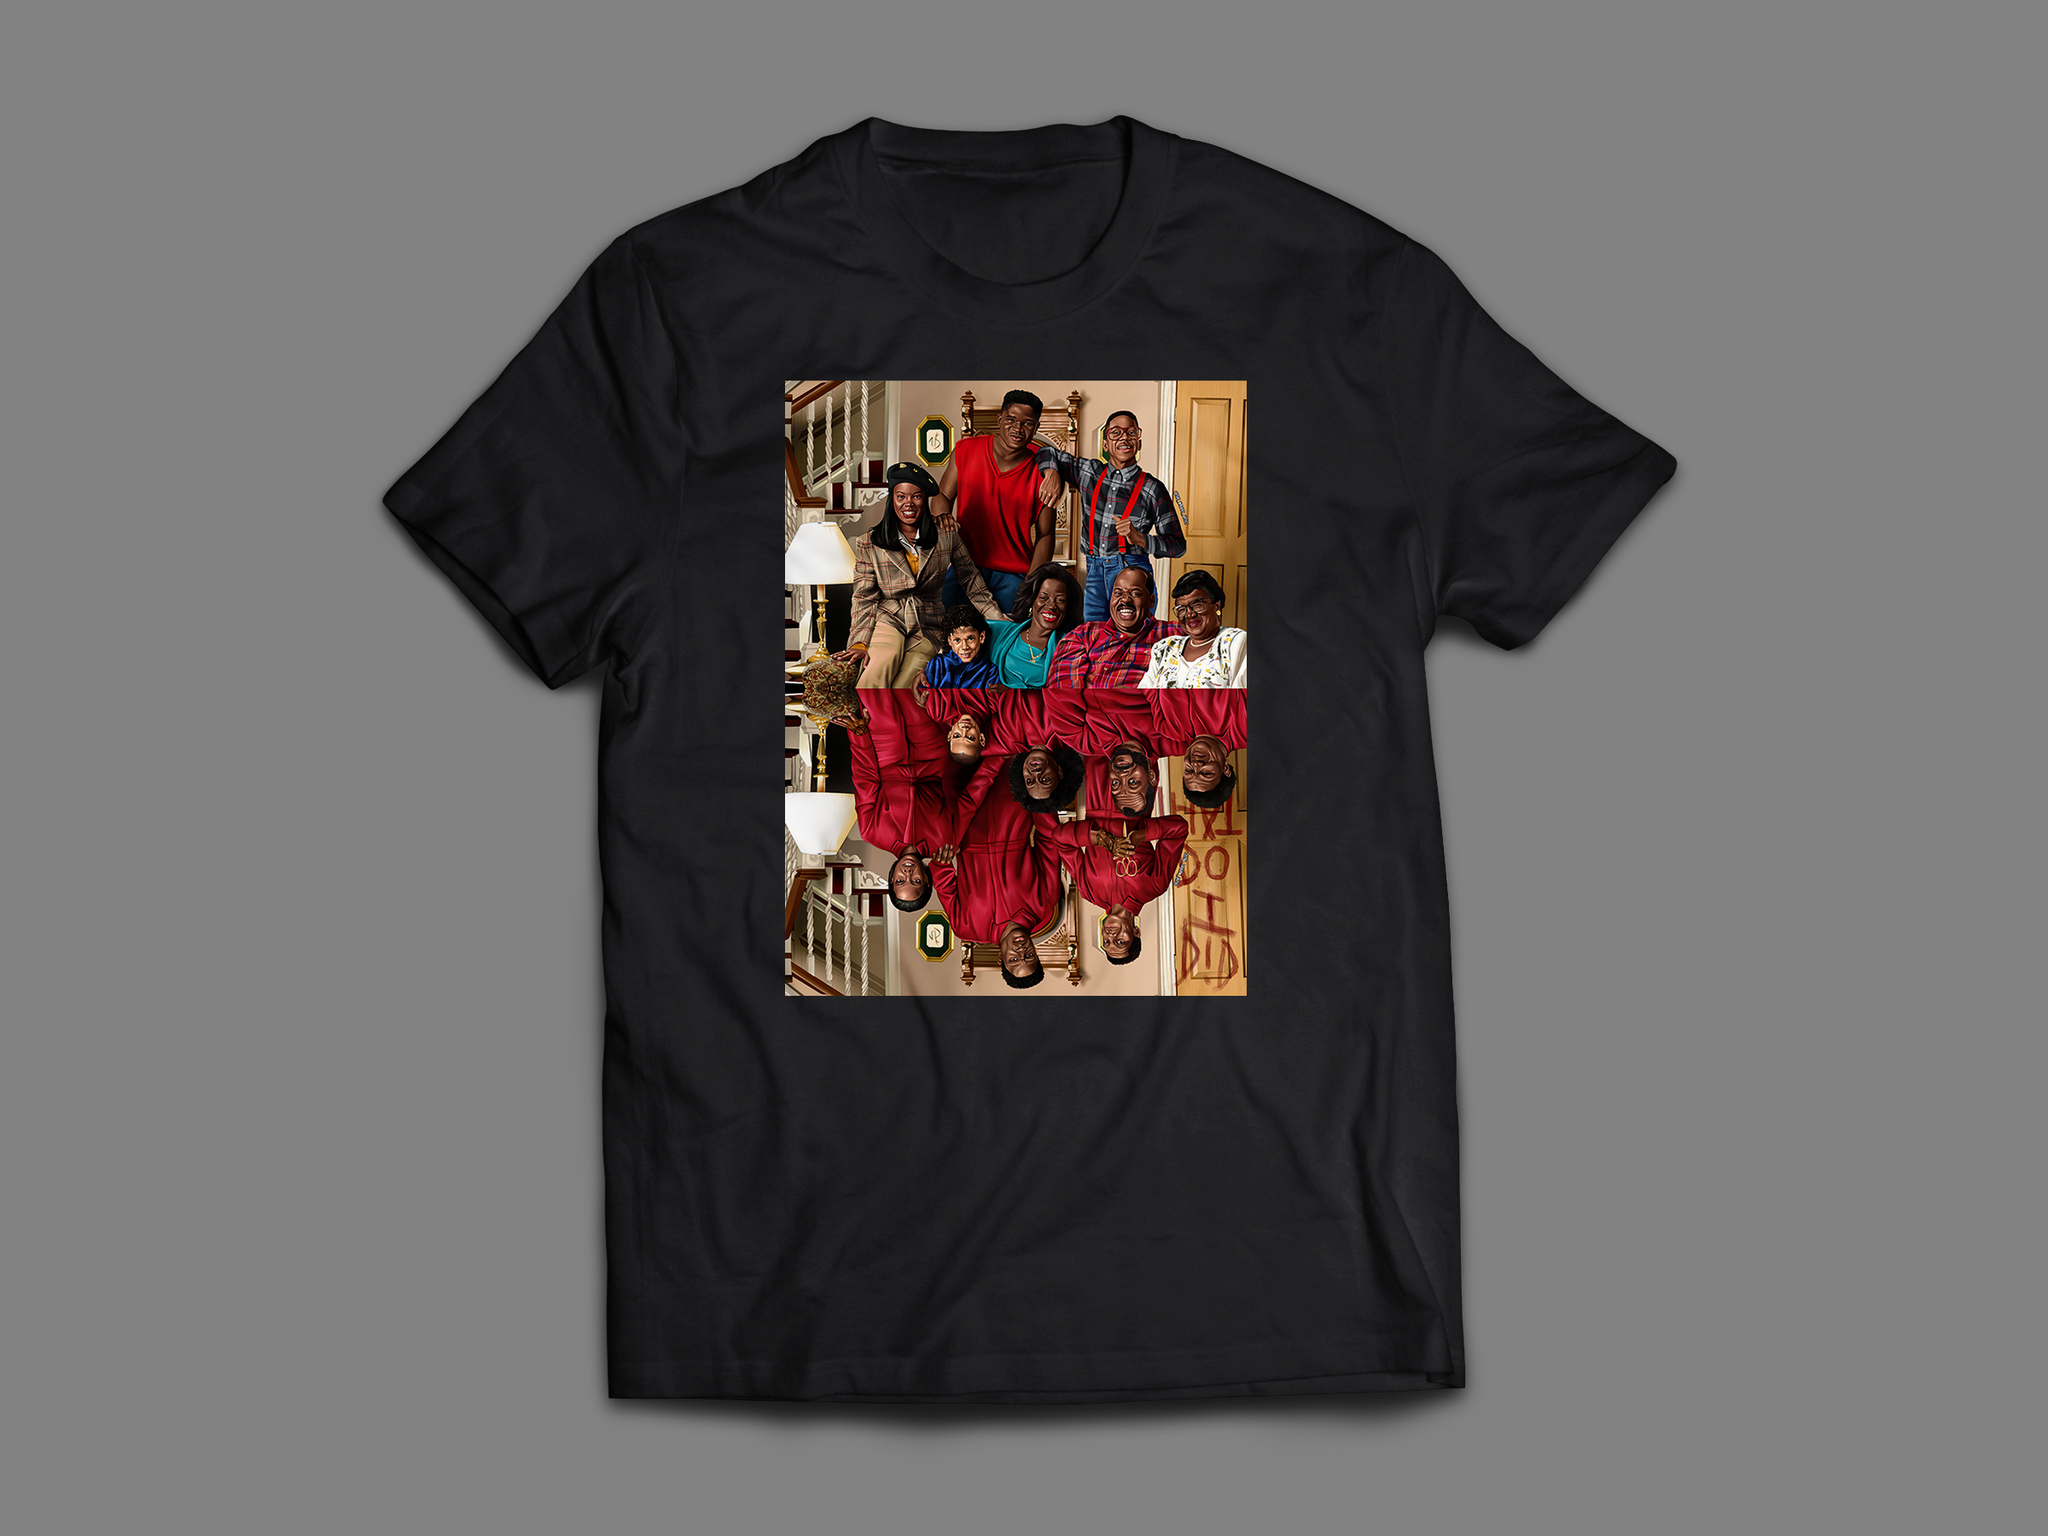 'Tethered Winslows' T-Shirt